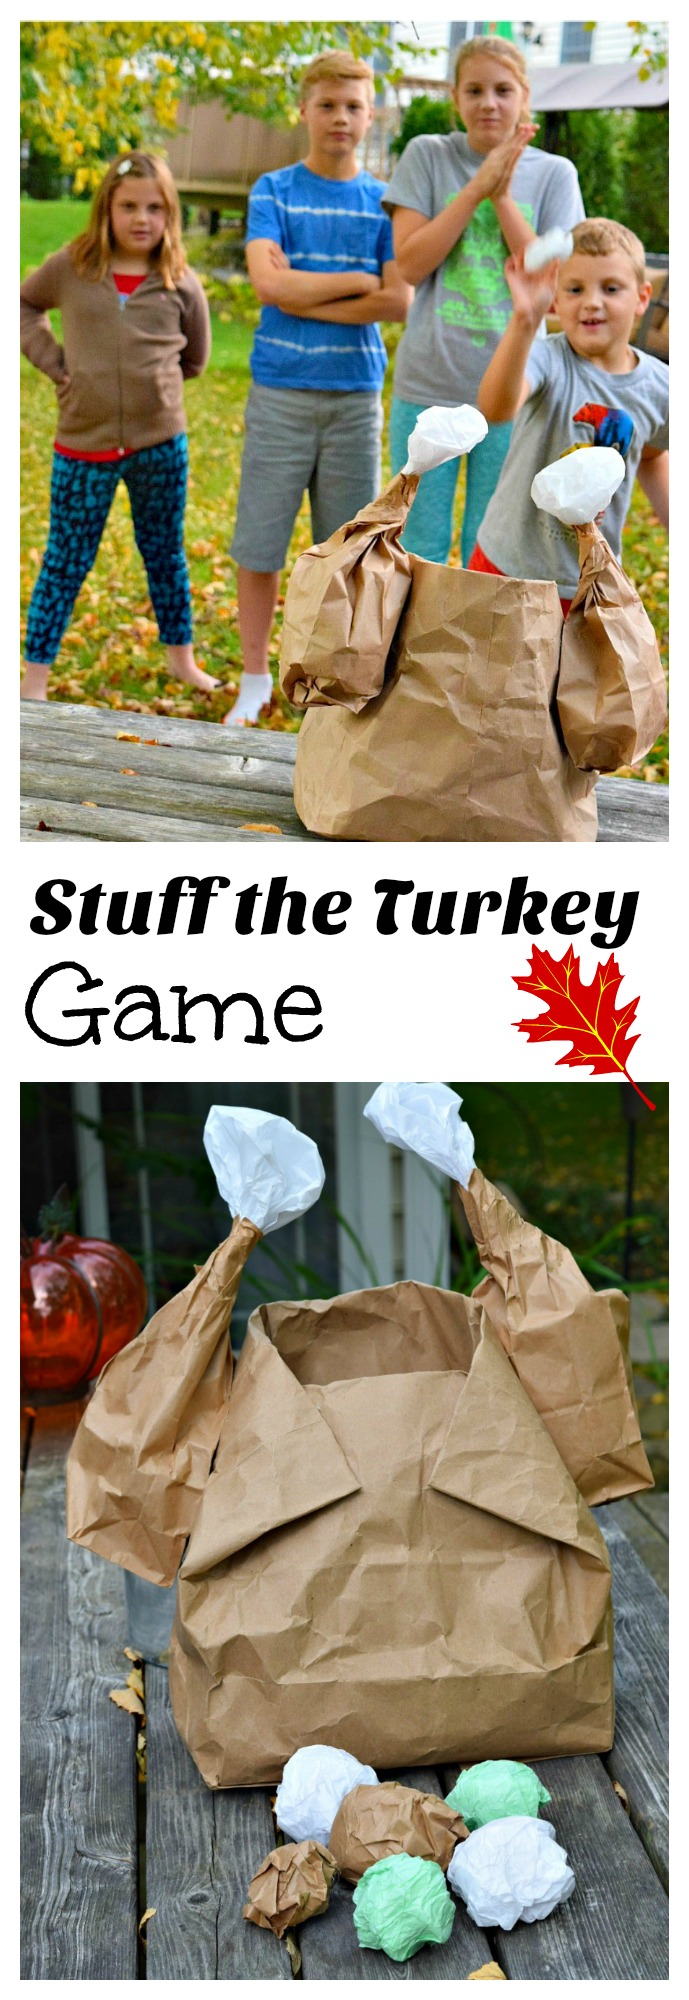 It's a fun Stuff the Turkey Game for a fun Thanksgiving Game - Perfect for preschool or elementary school. The kids love it, and it's easy to make! www.kidfriendlythingstodo.com